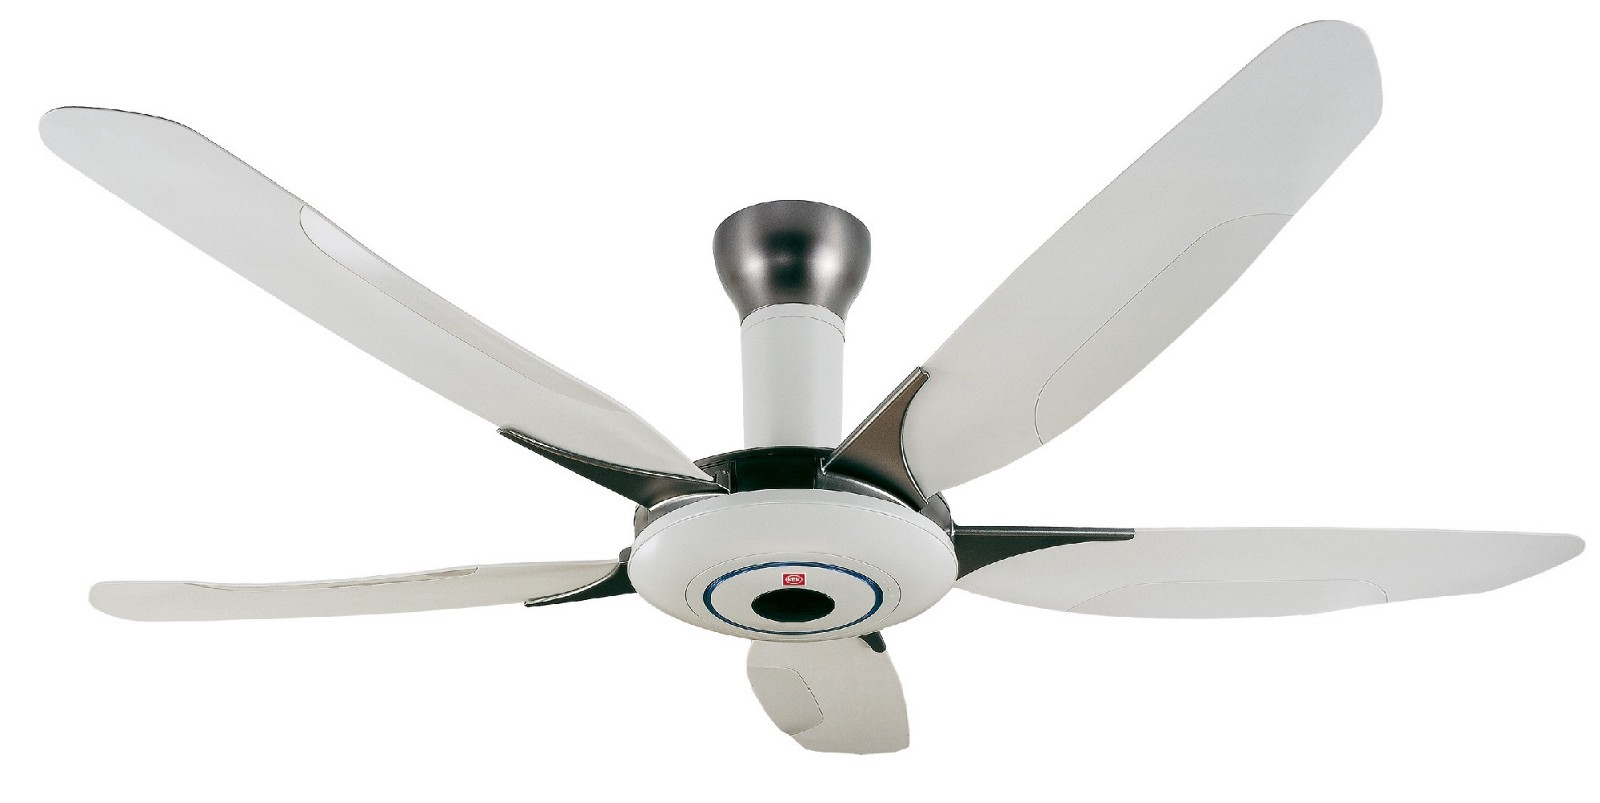 Exotic And Highly Advanced Ceiling Fan Becomes The Standard Cooling Method In Homes Offices Theaters Any More Enclosed Space To Fight